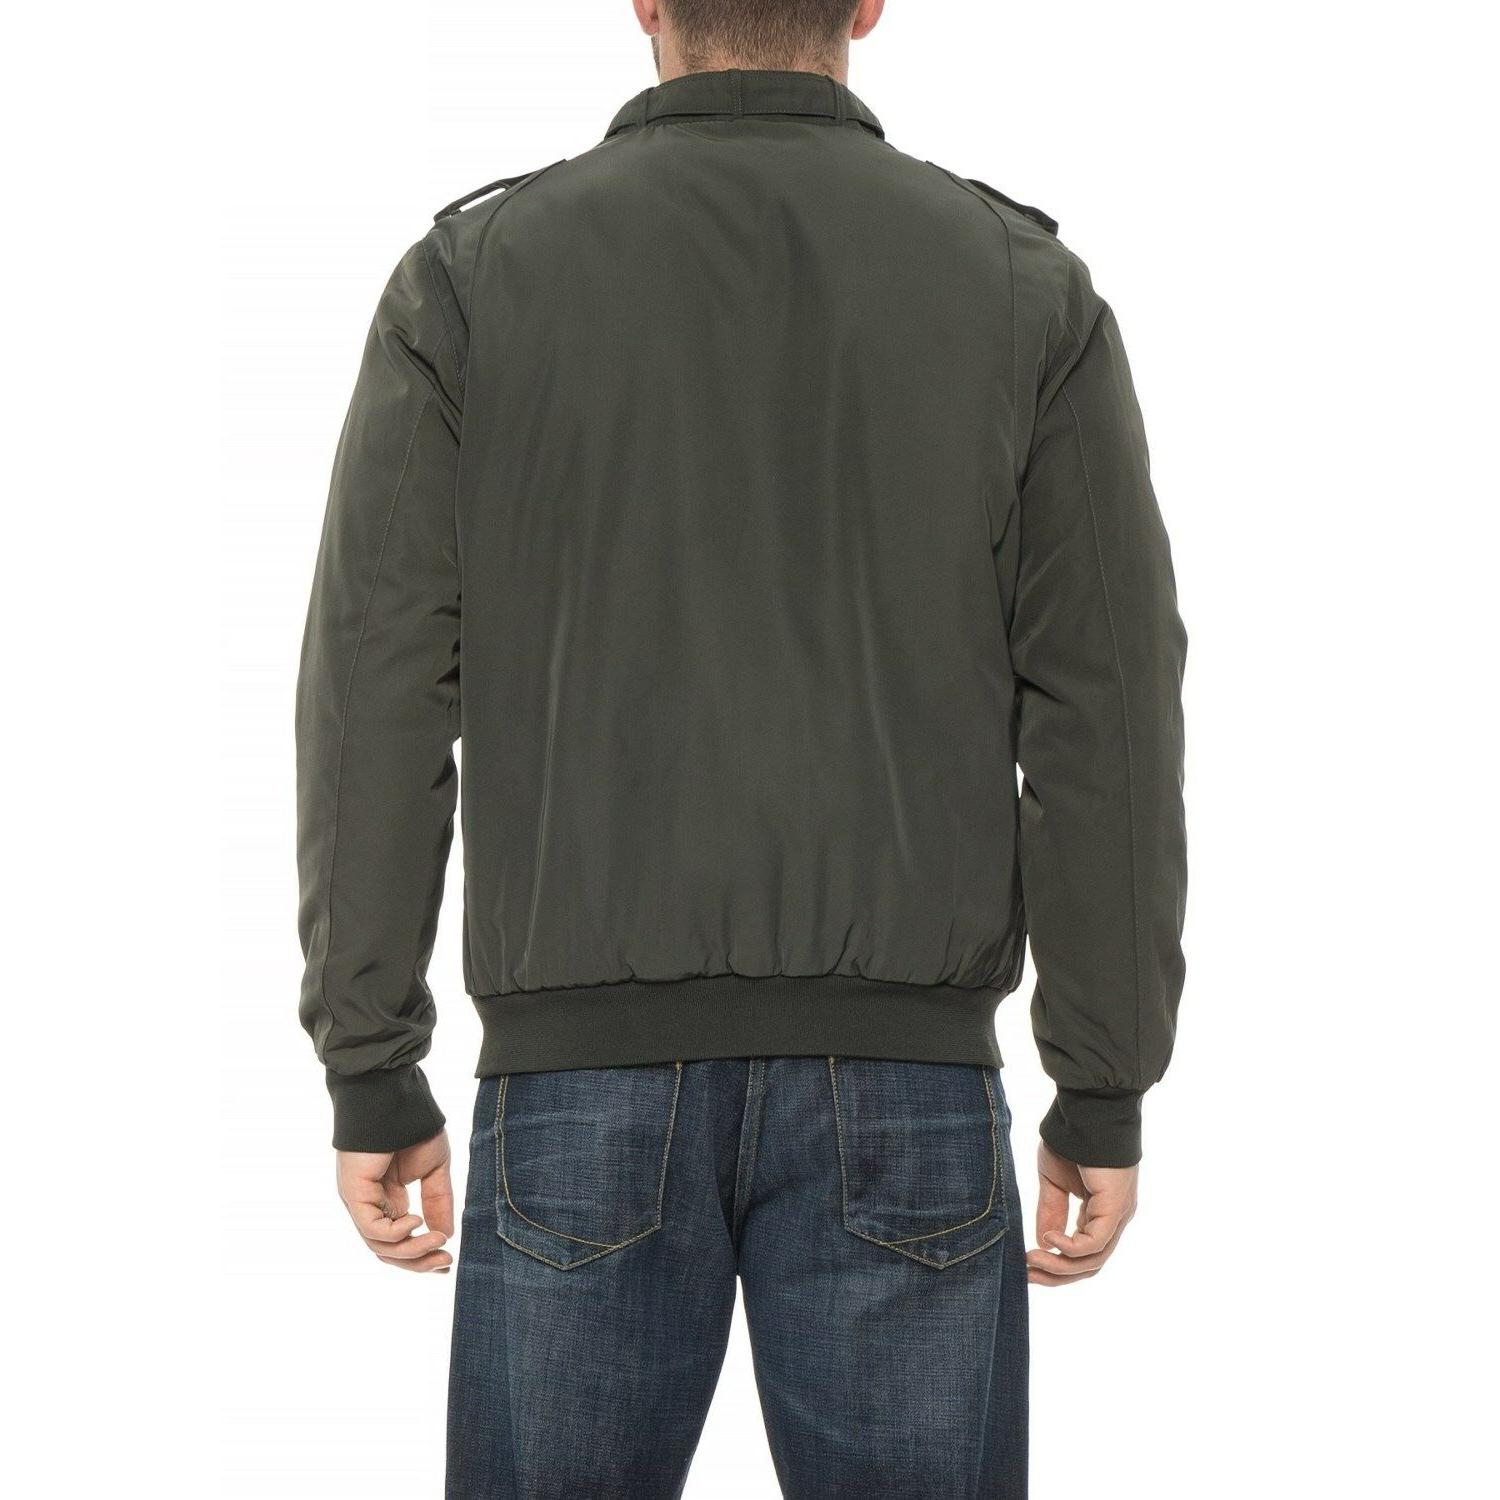 Members Only Jacket Mens XL - Green New